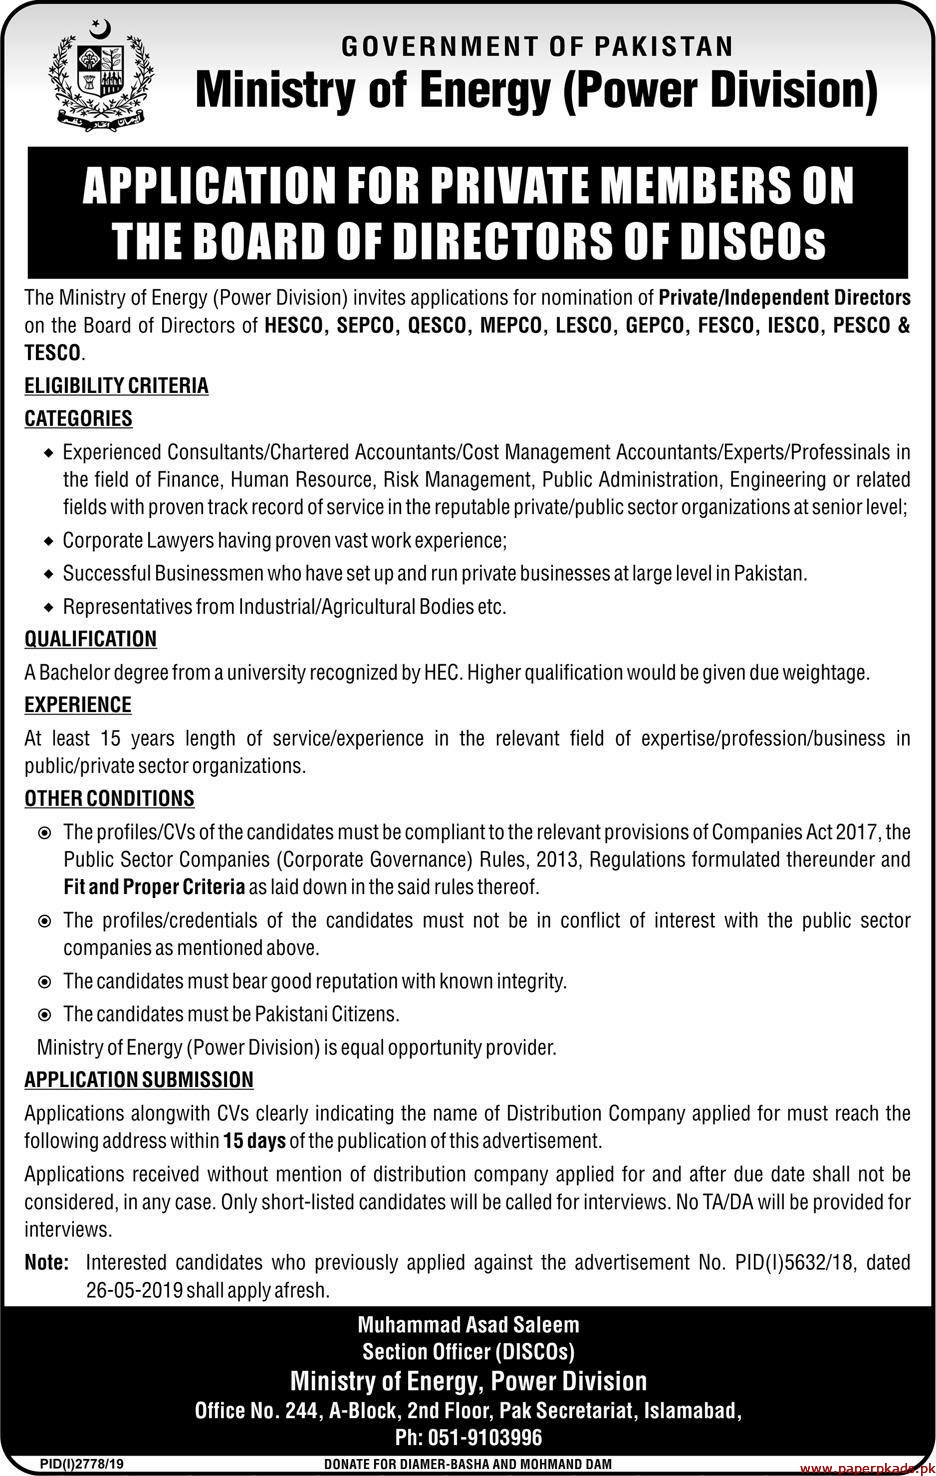 Ministry of Energy Government of Pakistan Jobs 2019 Latest